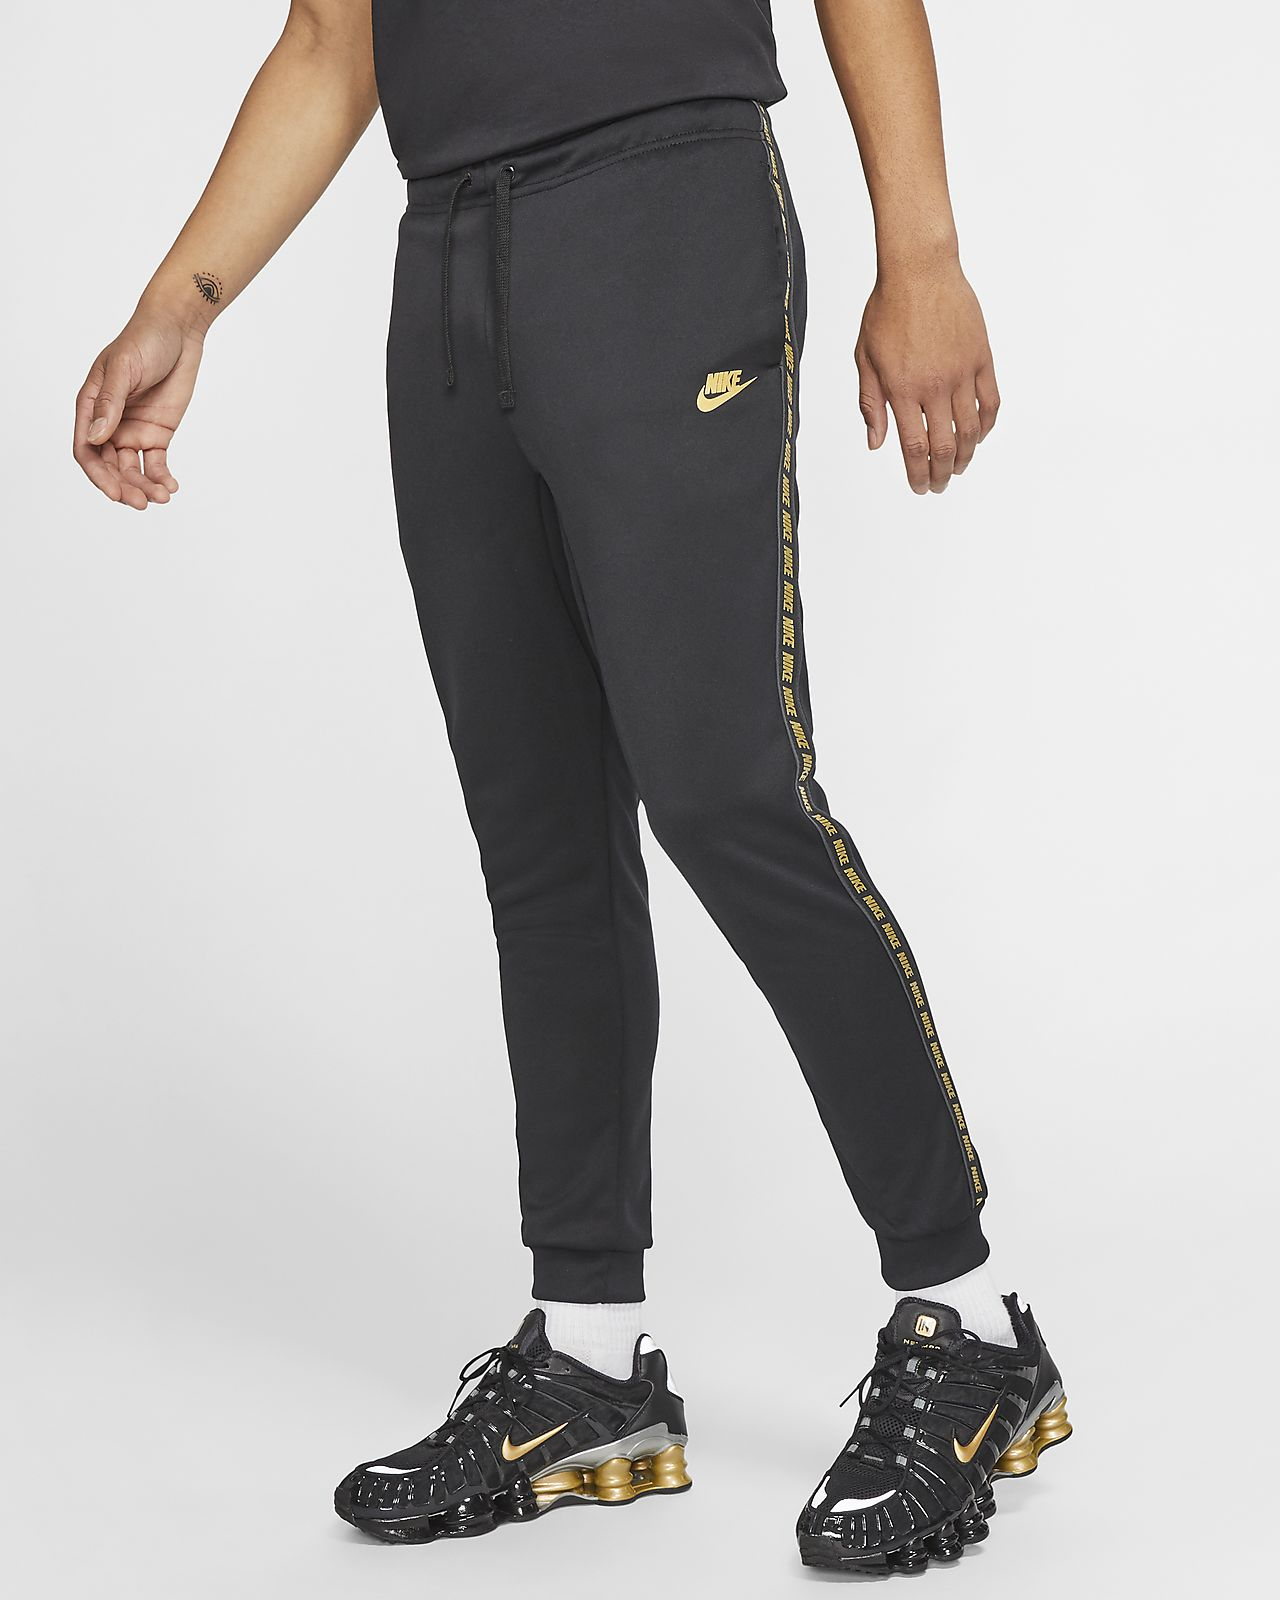 Nike Sportswear Men's Trousers